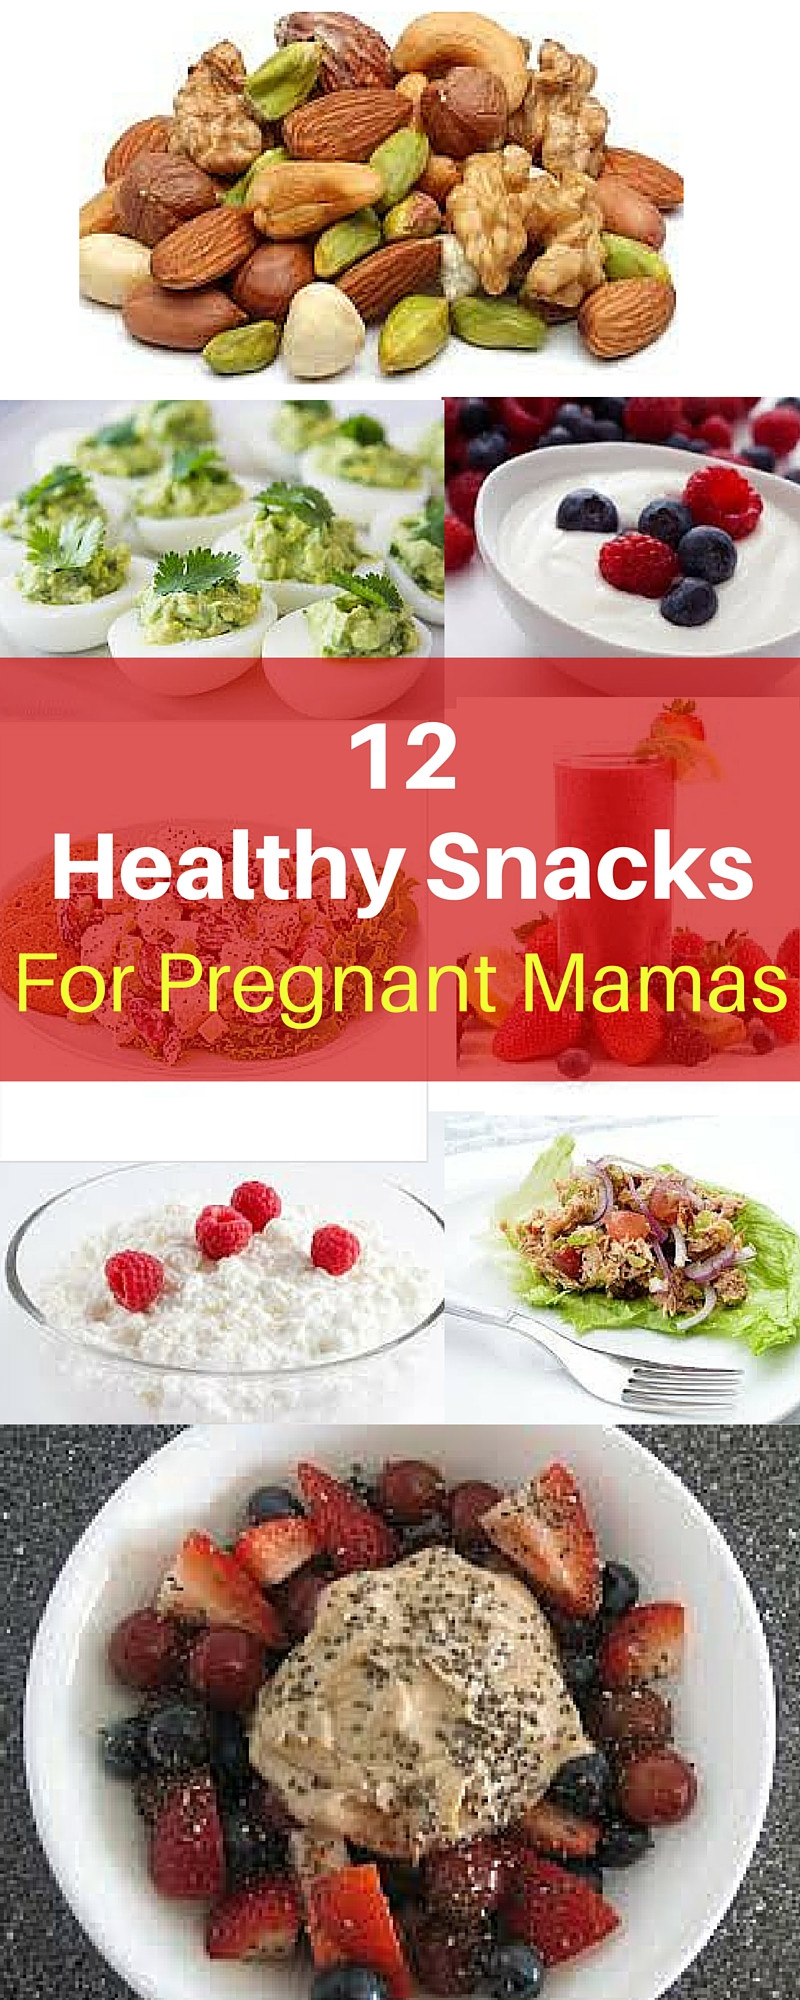 Healthy Snacks For Pregnancy  10 Healthy Snacks For Pregnant Mamas Michelle Marie Fit